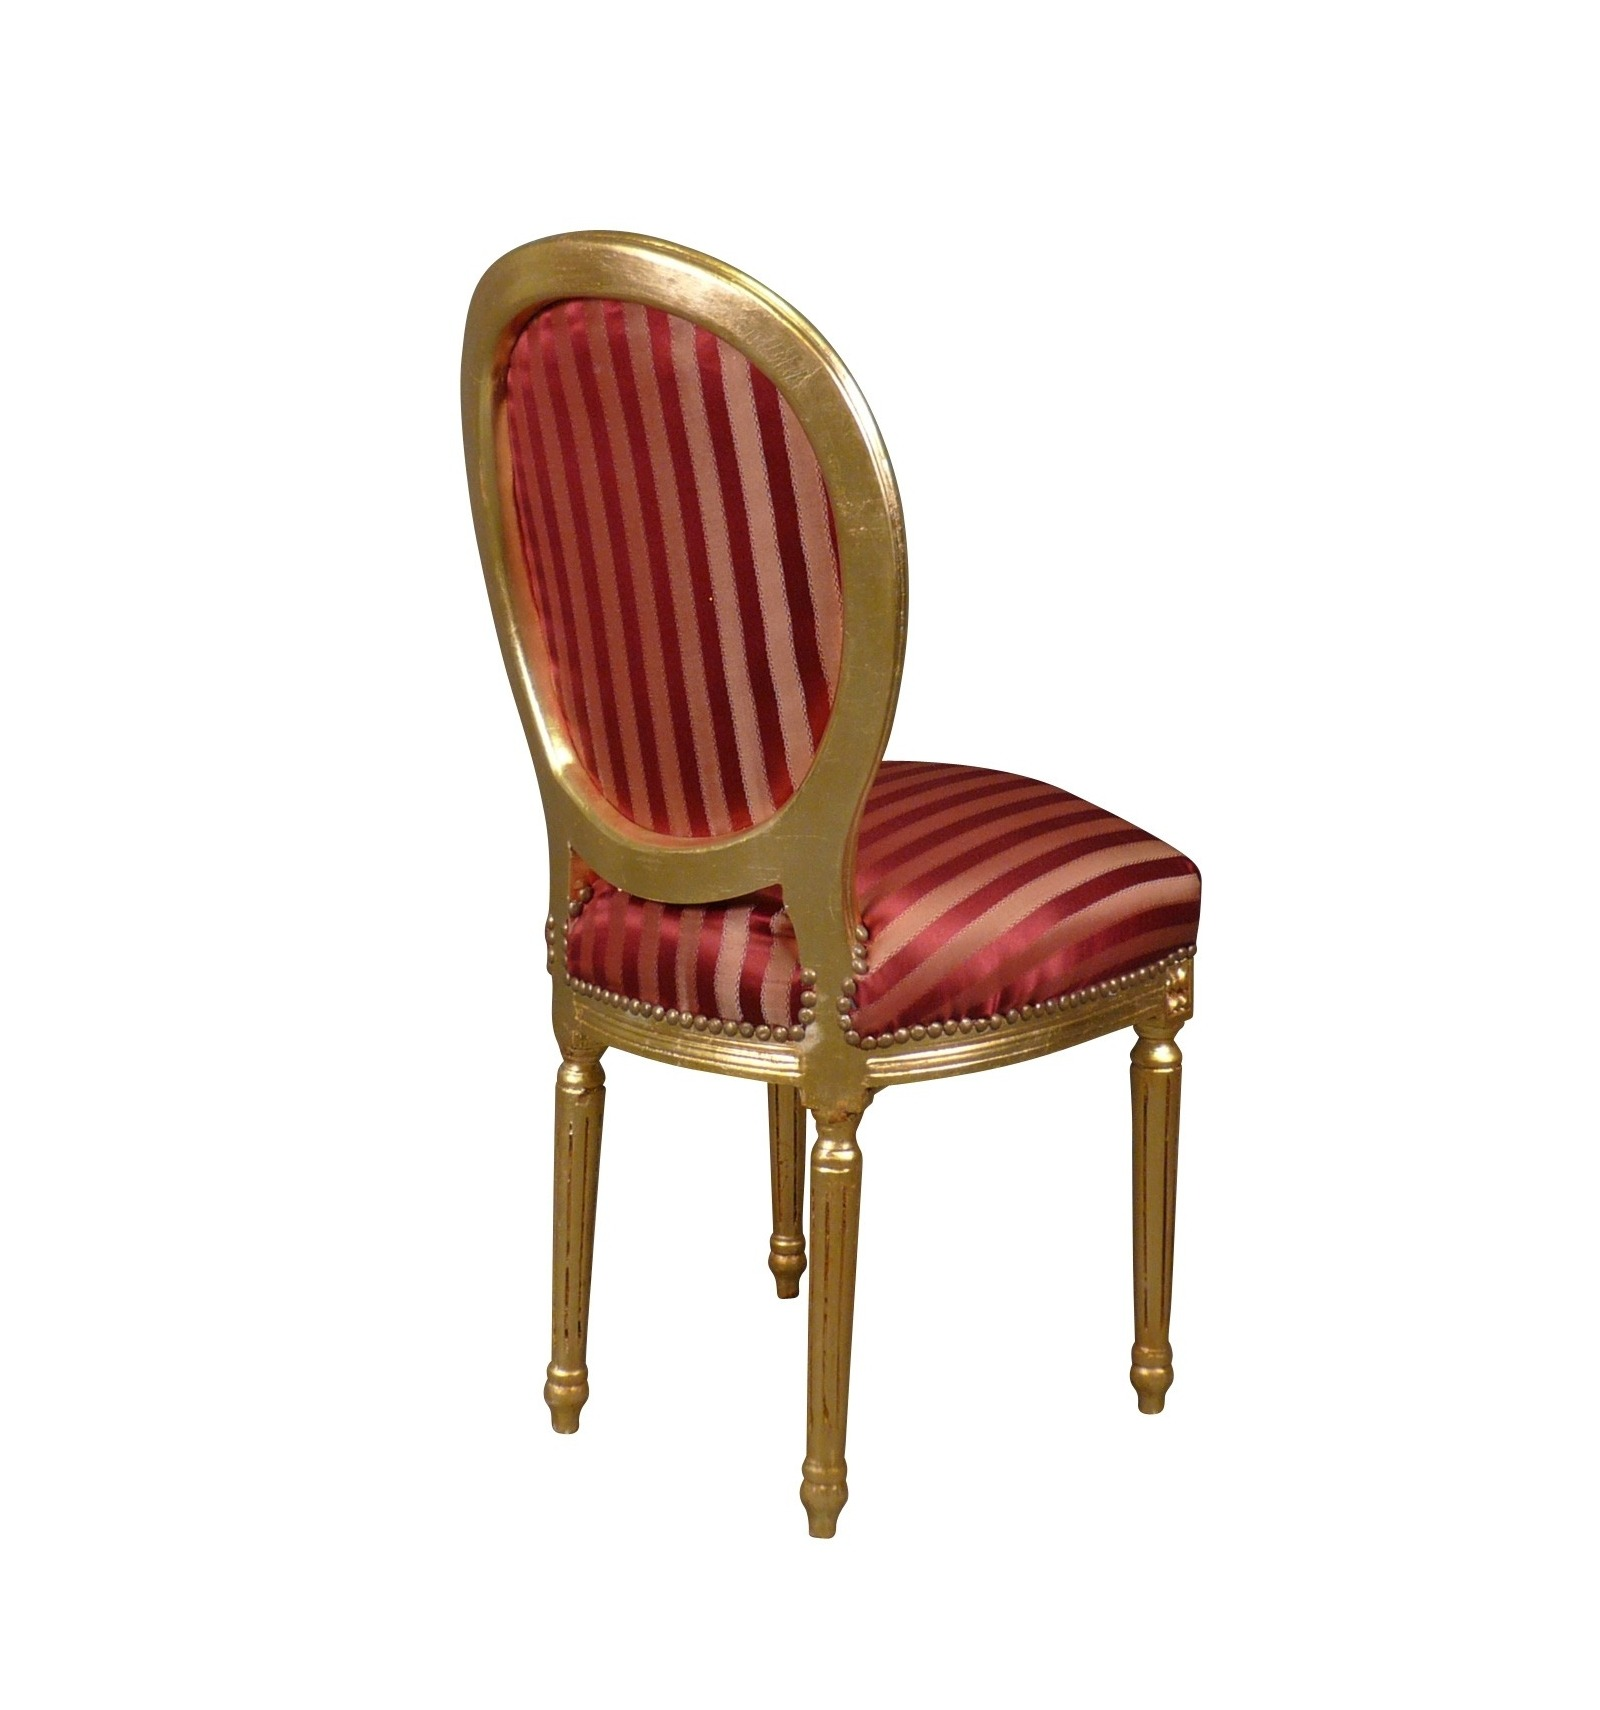 Chair baroque louis xvi style - Chaise baroque argentee ...